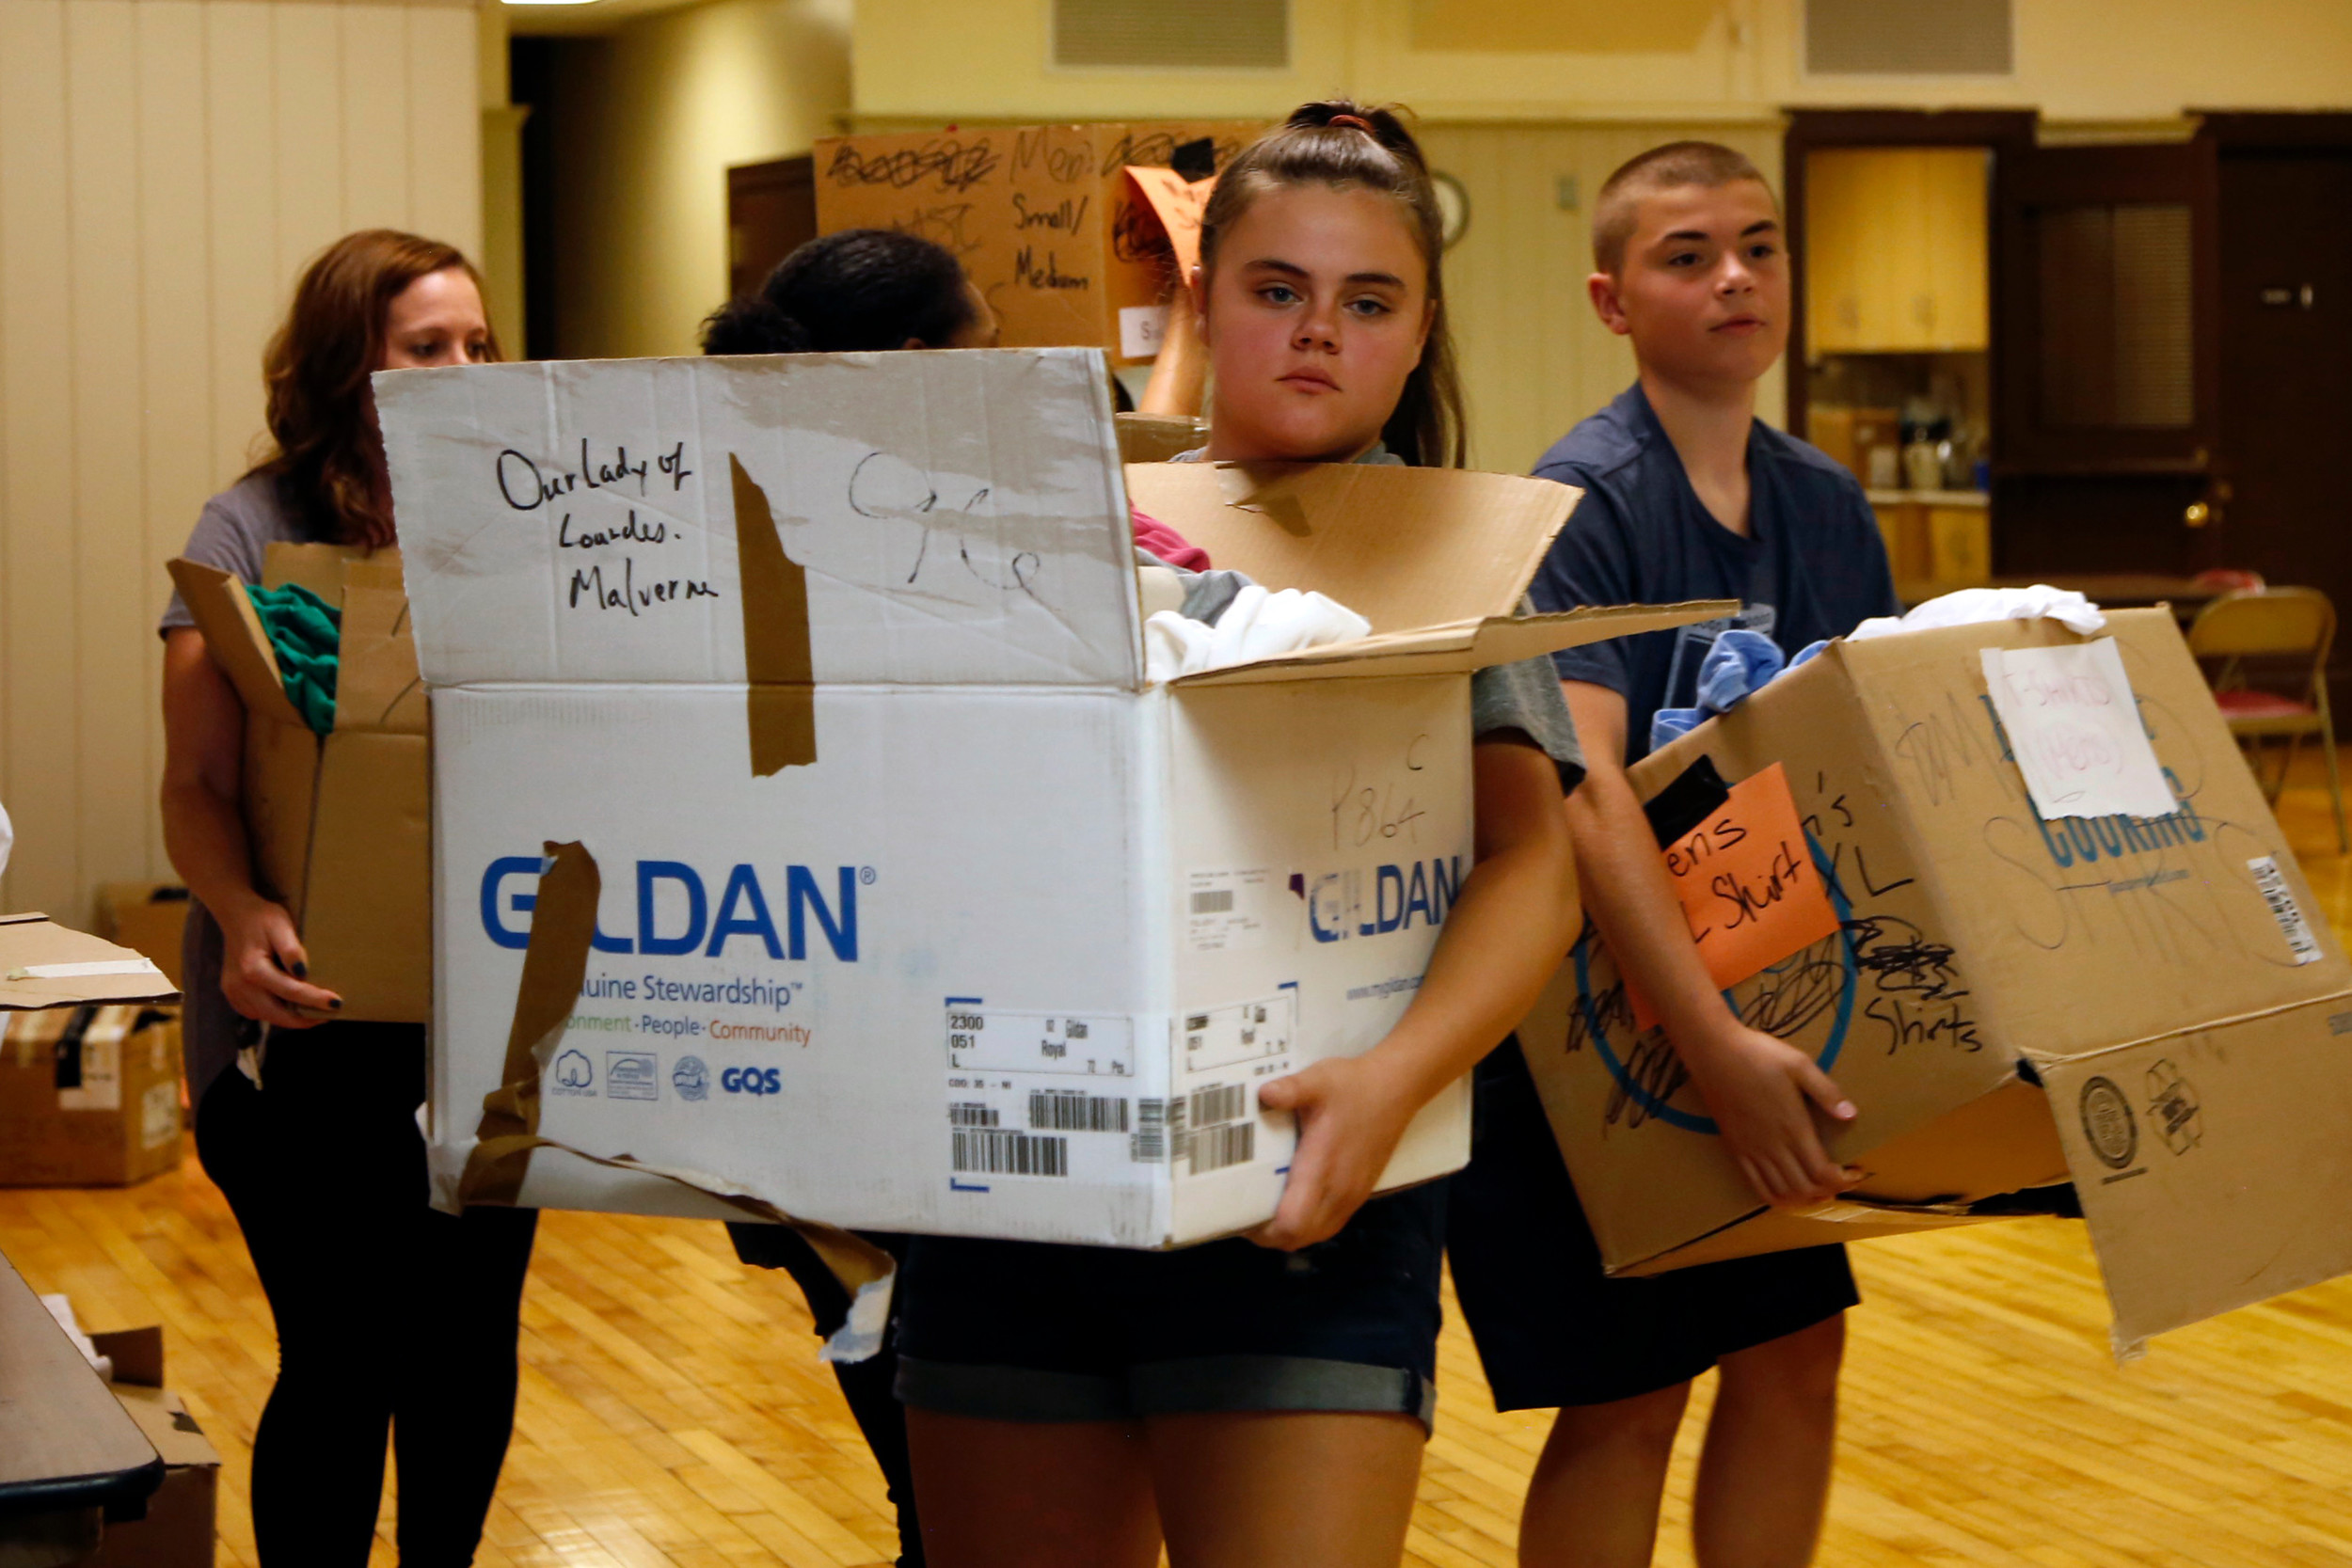 Gwen Church and TJ Ledwith carried boxes of supplies to the caravan.